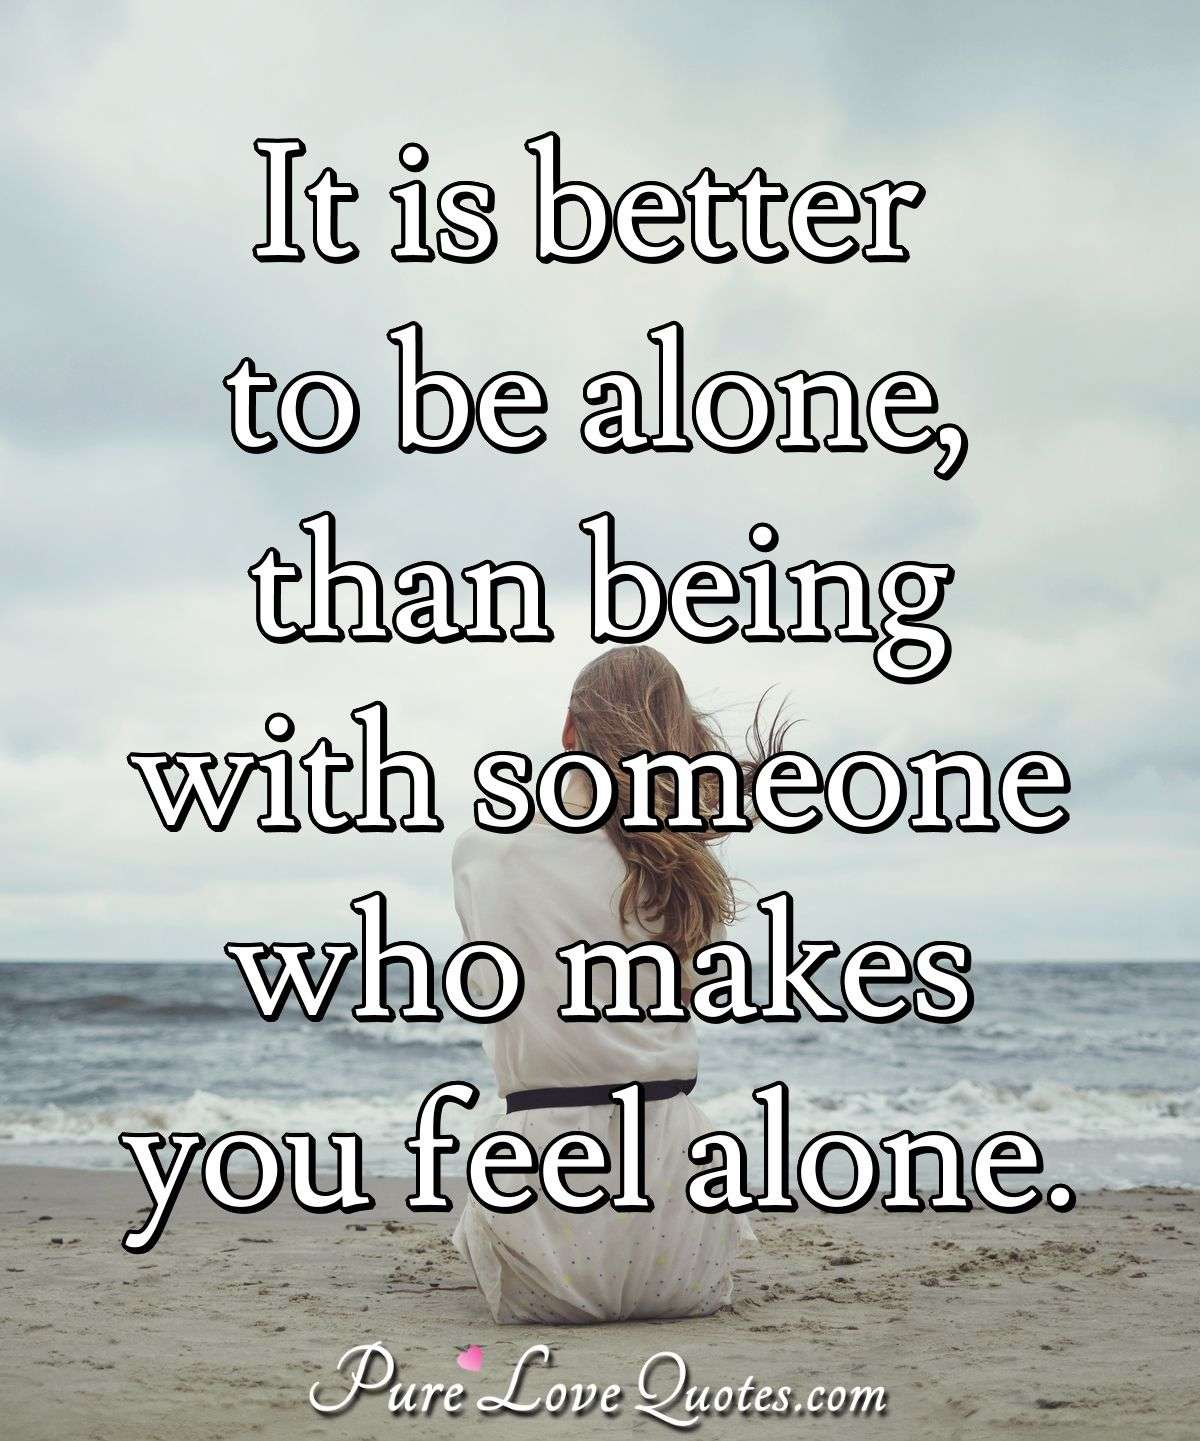 It Is Better To Be Alone Than Being With Someone Who Makes You Feel Alone Purelovequotes